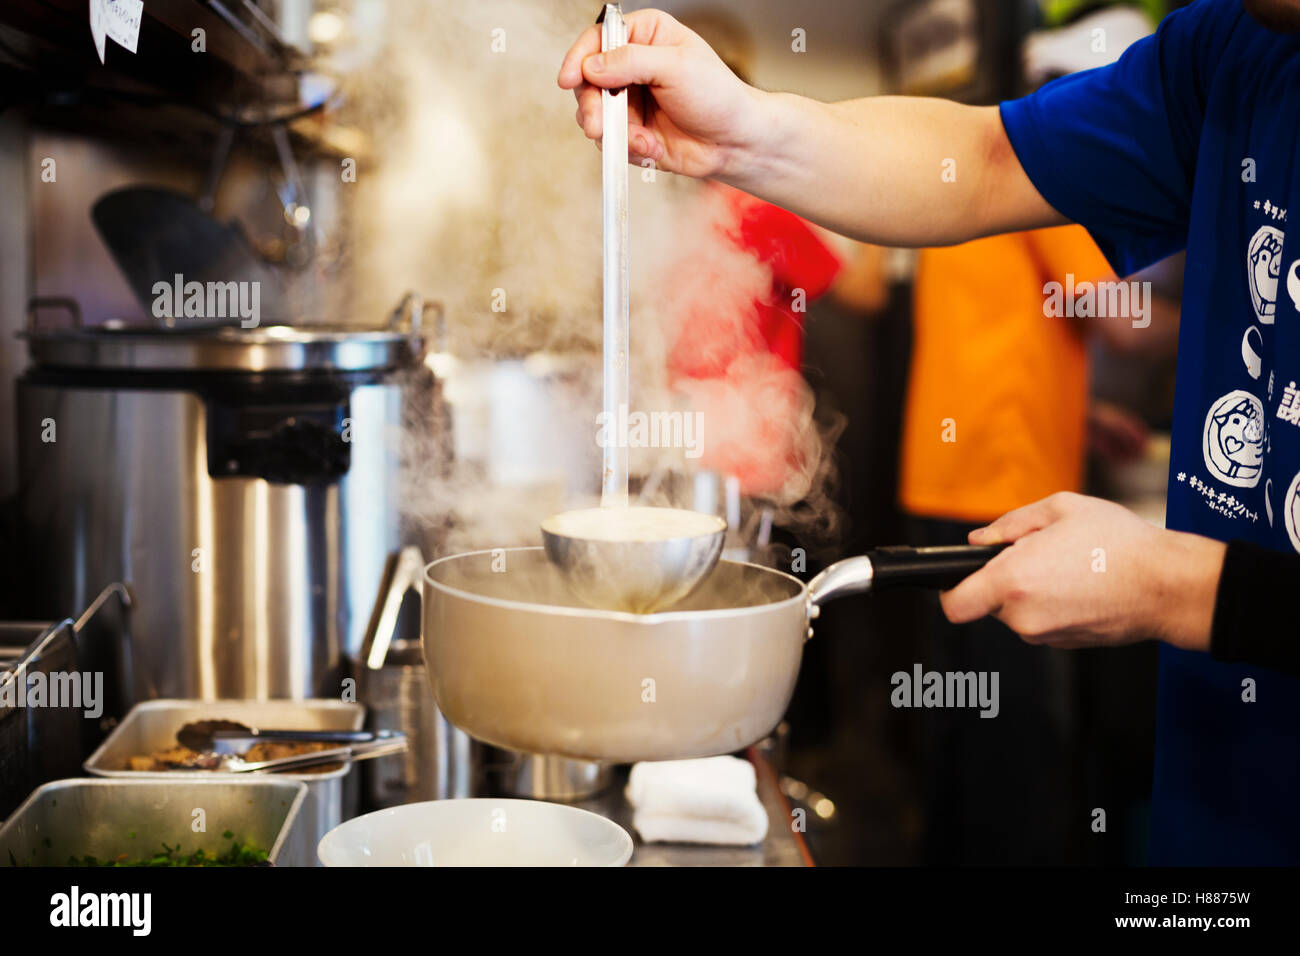 A ramen noodle shop kitchen. A chef preparing bowls of ramen noodles in broth, a speciality and fast food dish. - Stock Image